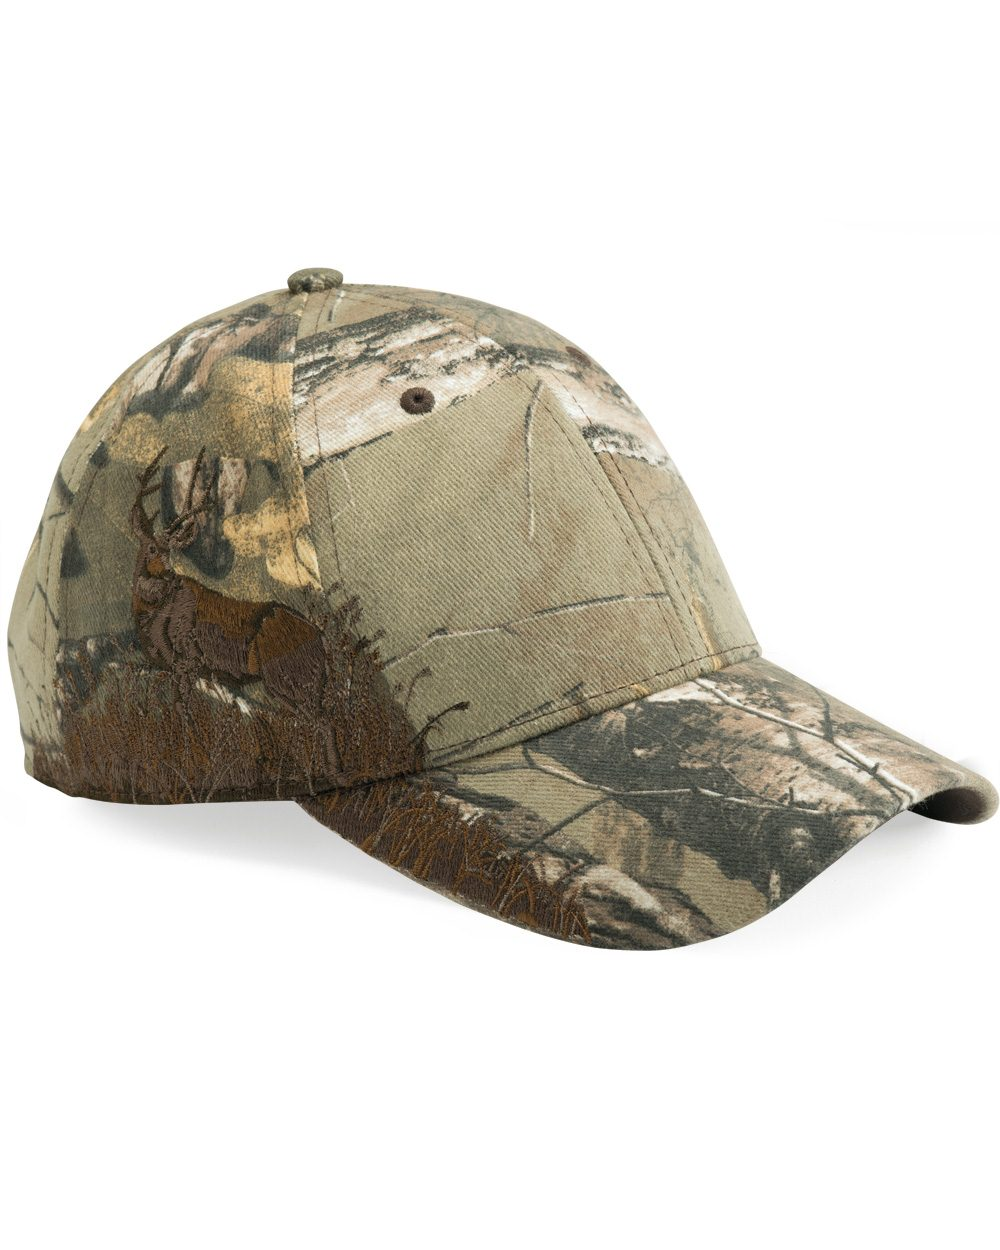 DRI DUCK Wildlife Series Mule Deer Caps - 3282